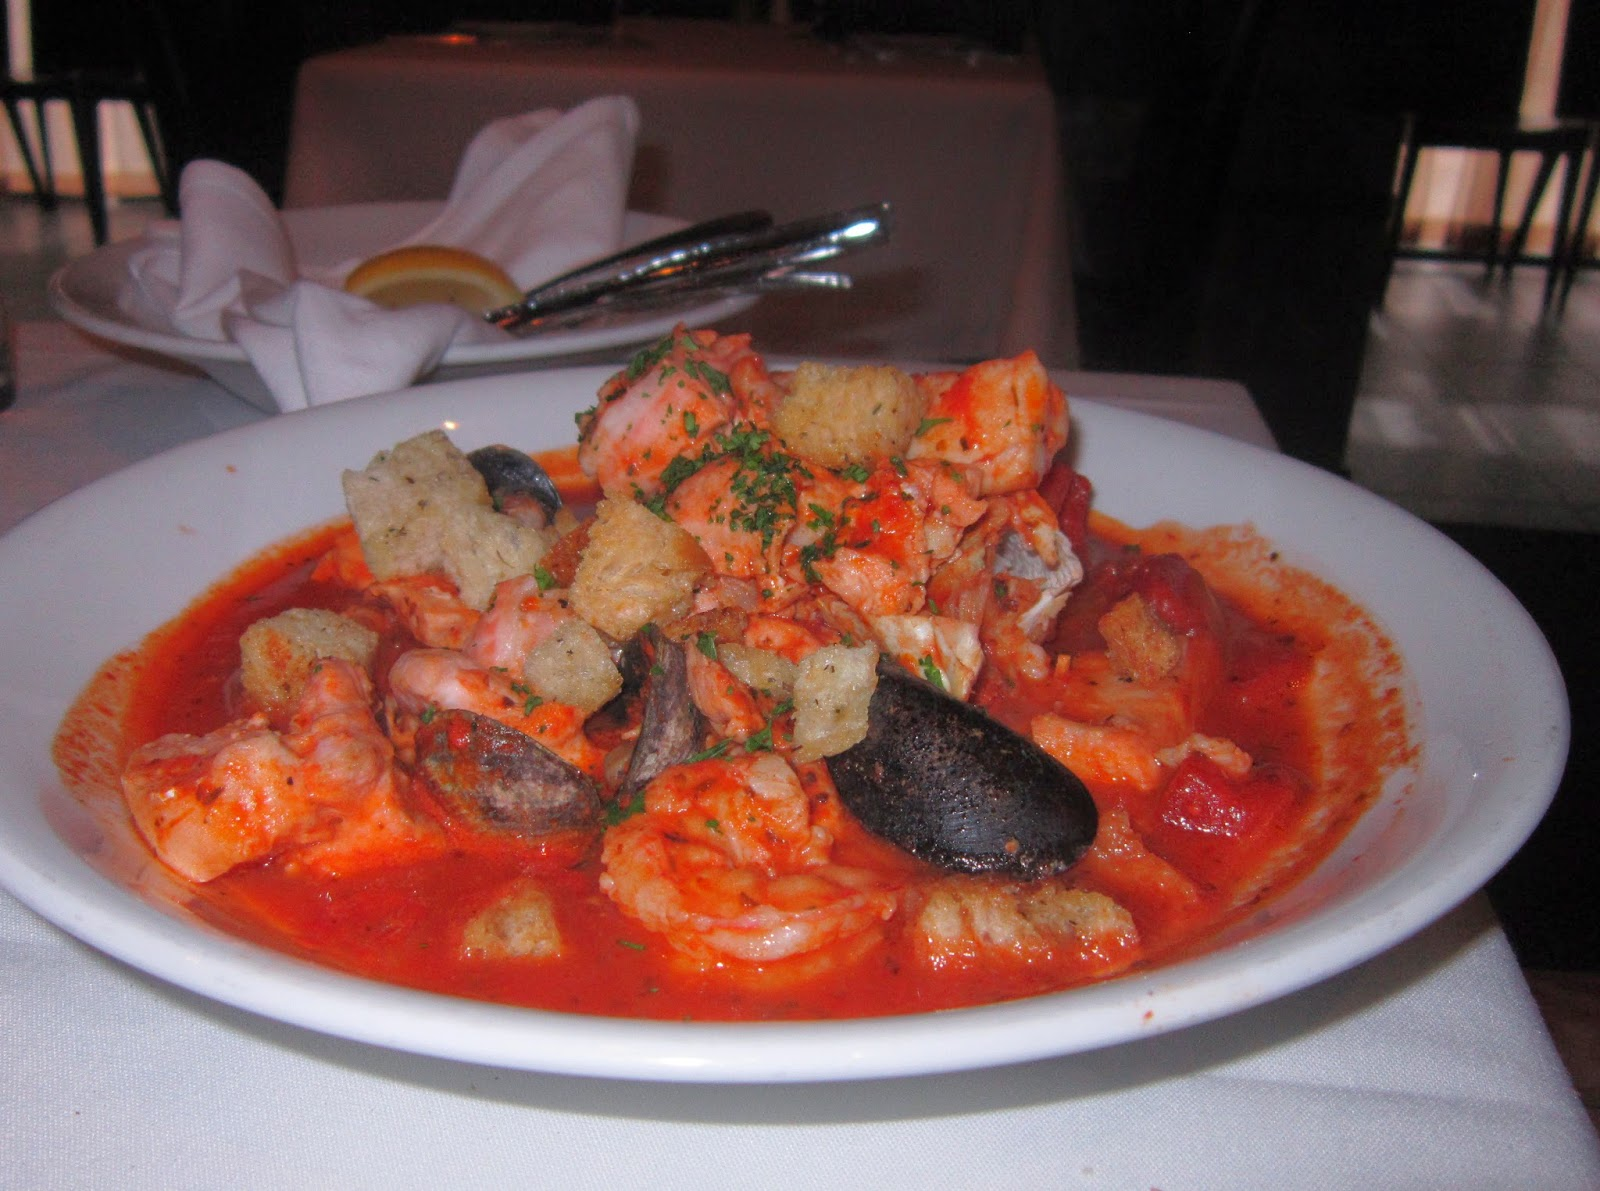 The Boys Both Ordered San Francisco Cioppino And It Came Out Bright Full Of Wonders From Sea Large Pieces Crab Shrimp Salmon Halibut